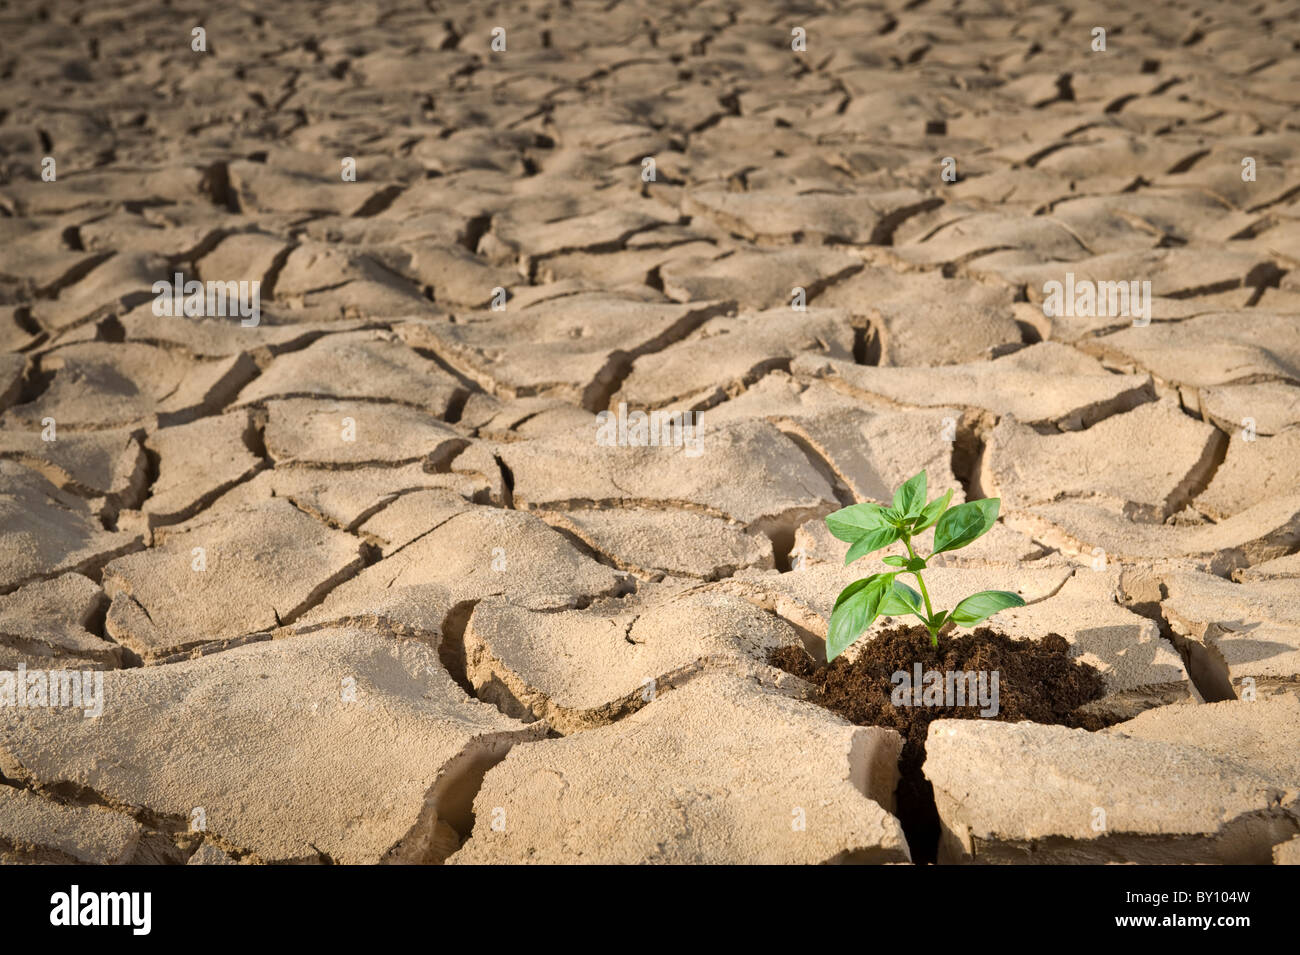 small Basil plant in apile of soil on a cracked soil surface Stock Photo